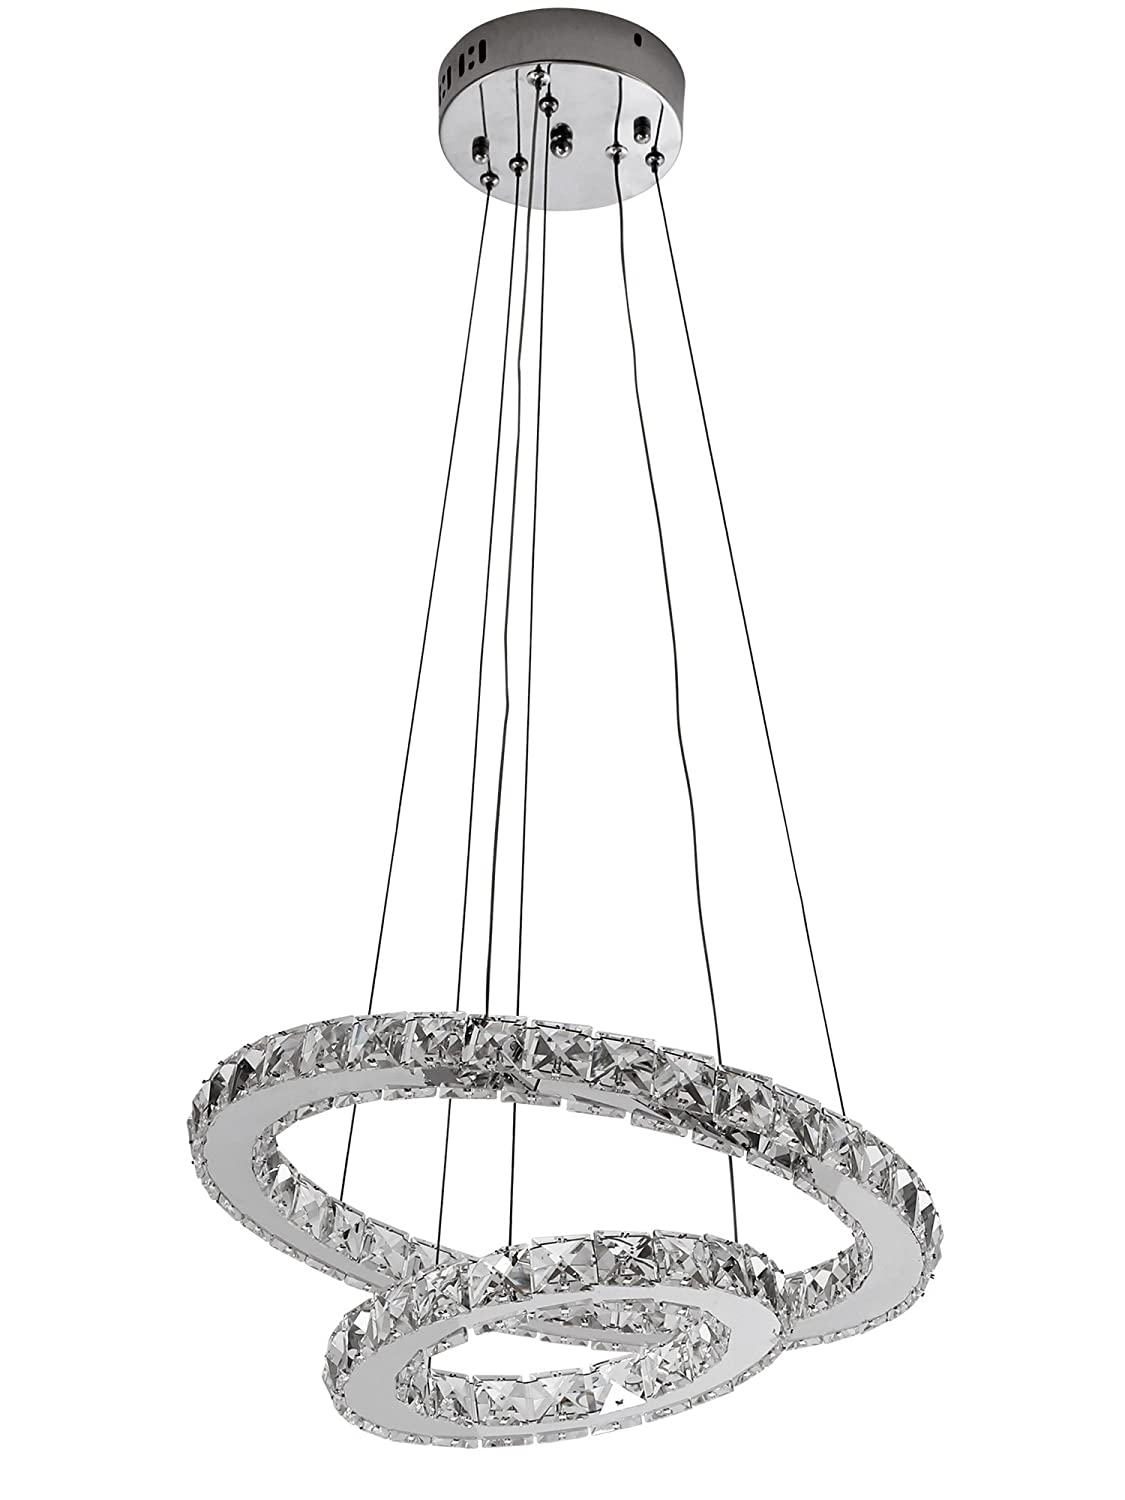 Kusun 36w modern crystal lights led pendant with unique two rings ceiling light fixture chandeliers lamp energy class a